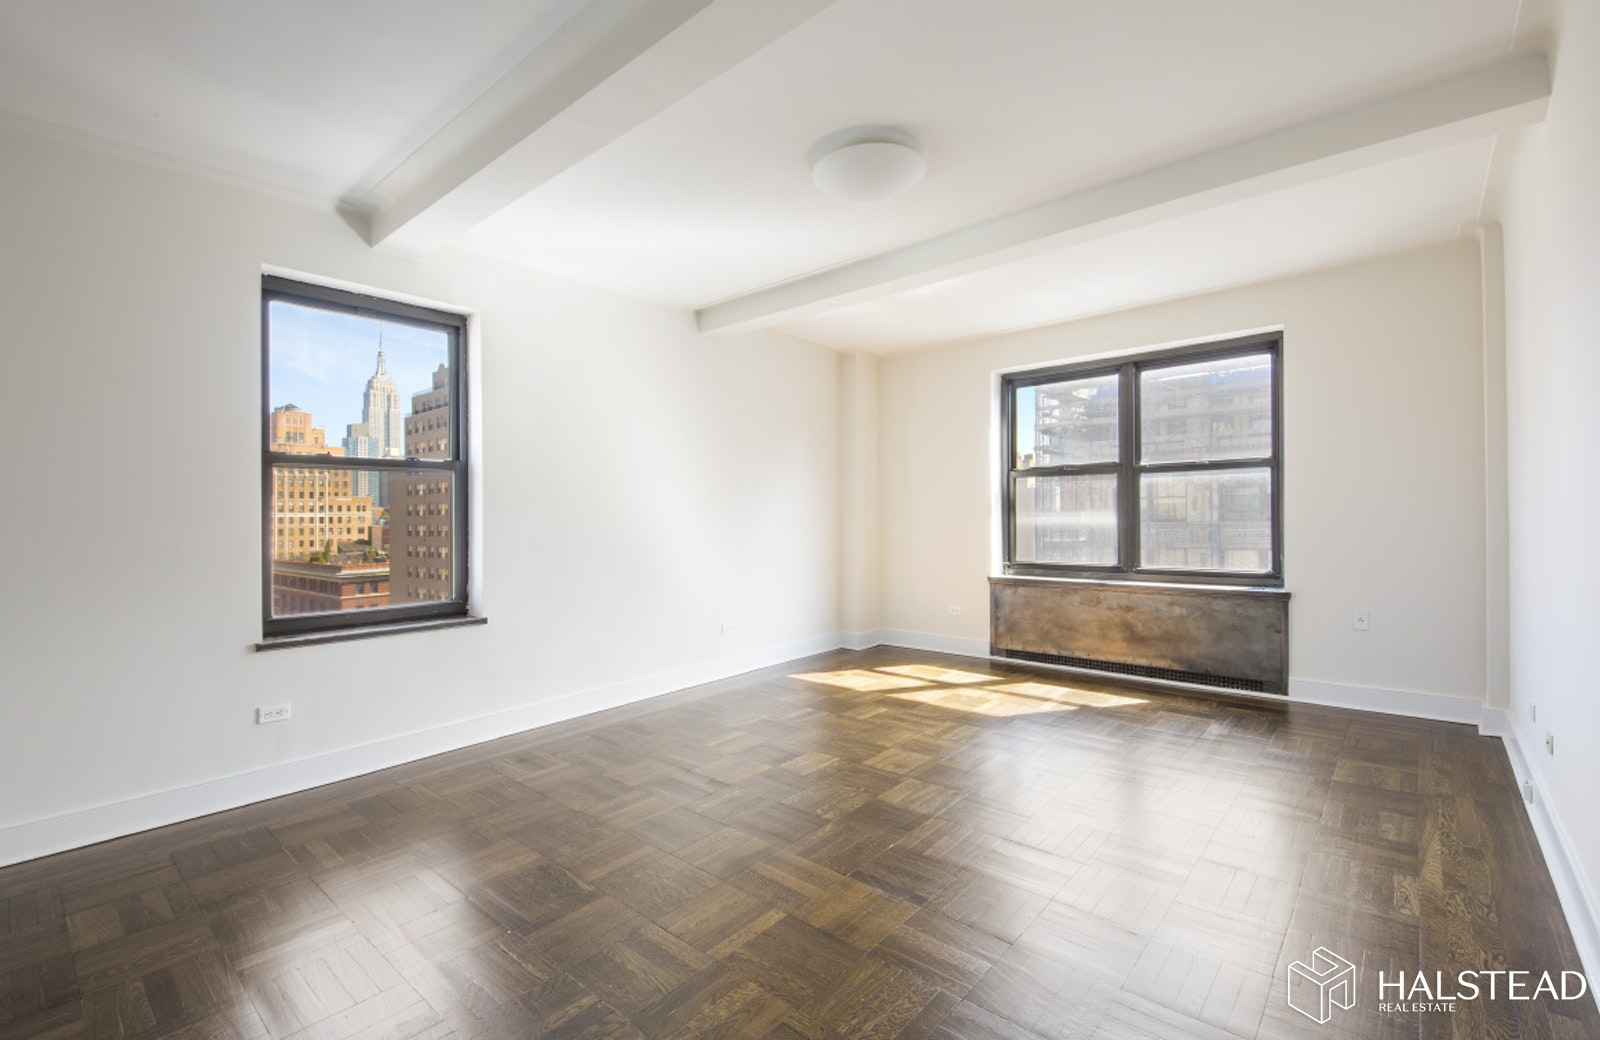 56 Seventh Avenue 12h, West Village, NYC, 10011, Price Not Disclosed, Rented Property, Halstead Real Estate, Photo 1